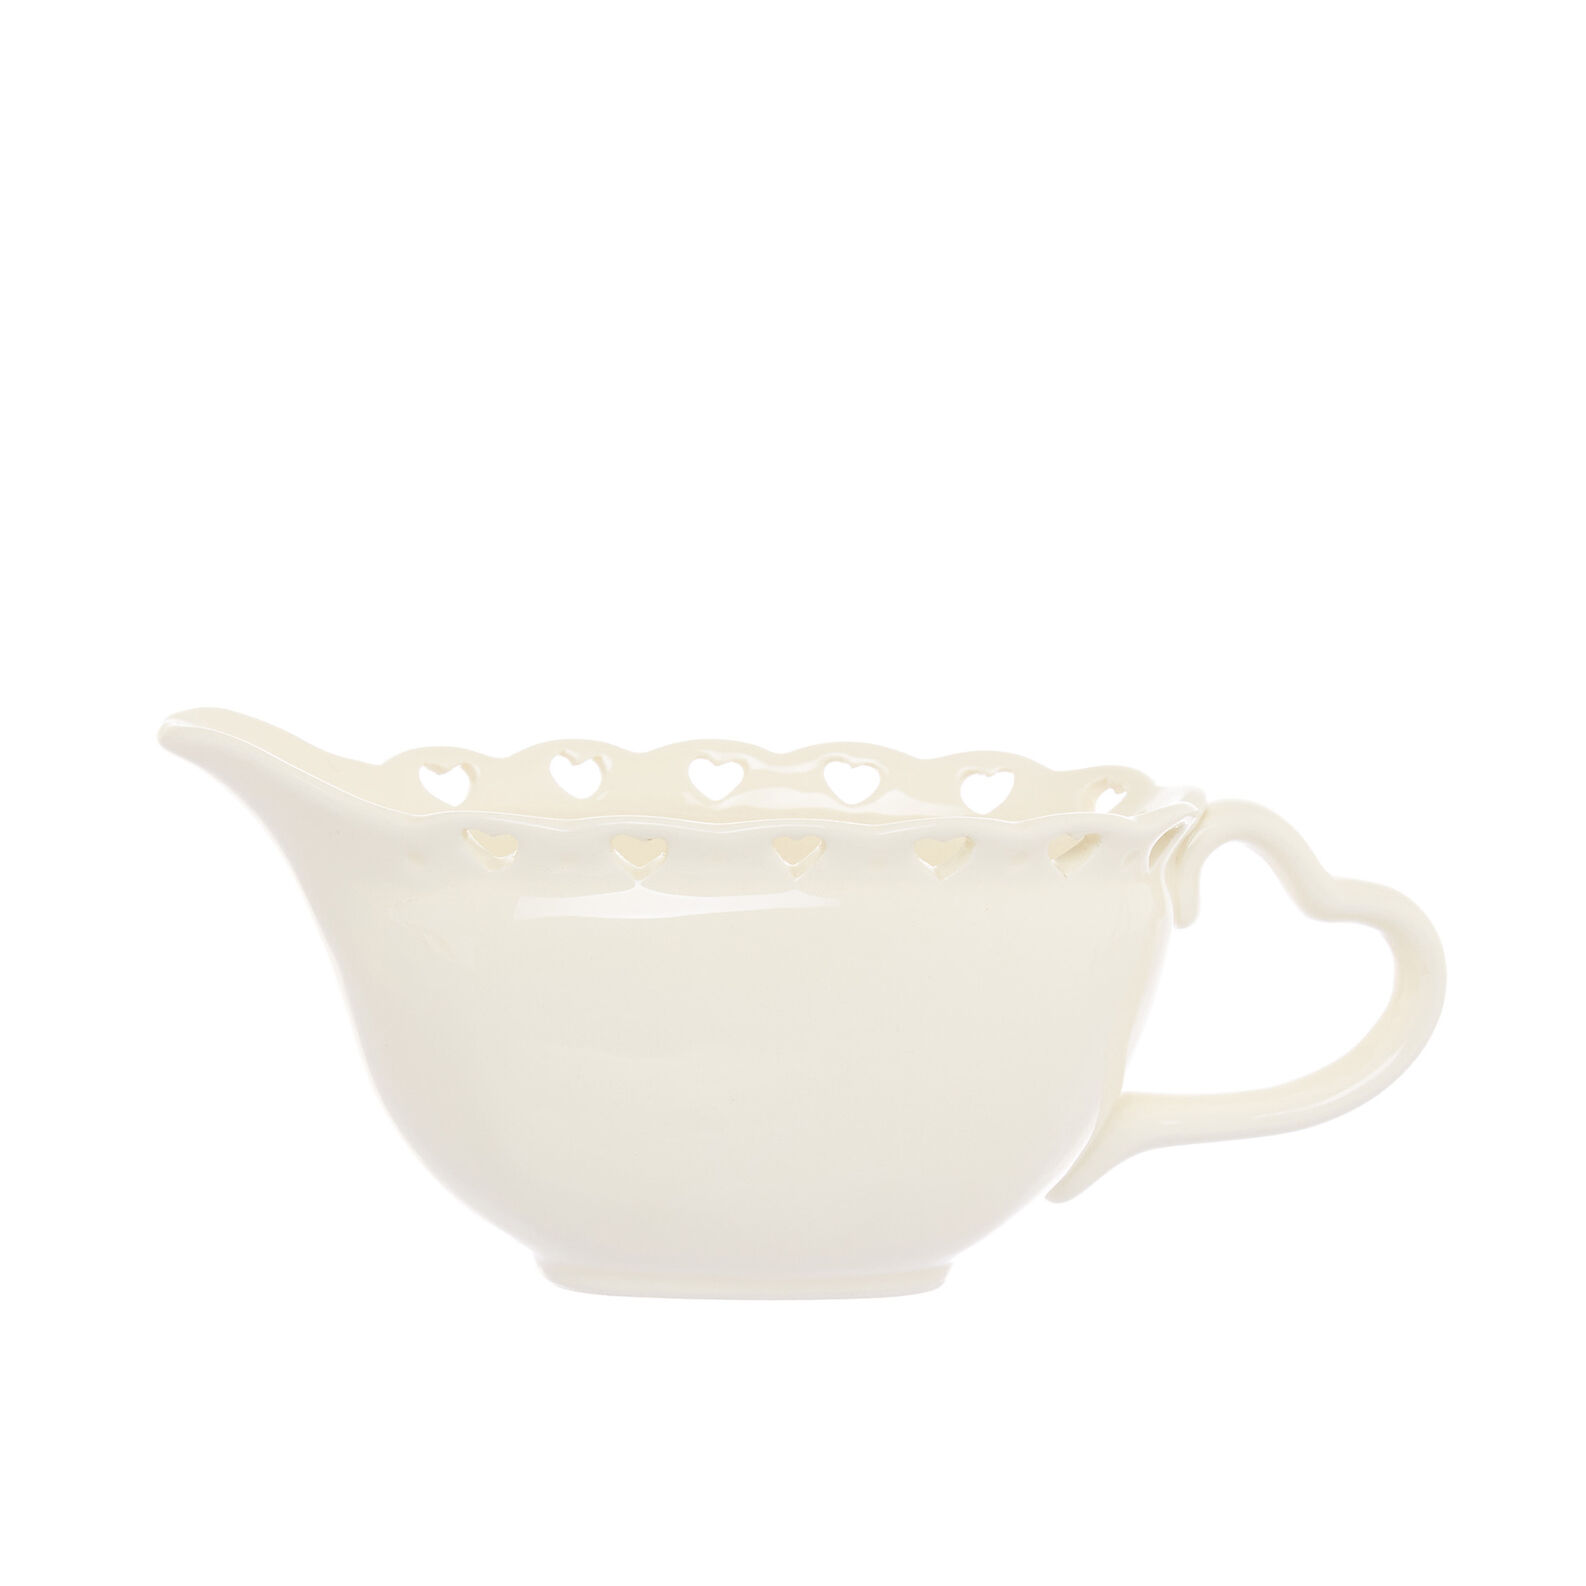 Ceramic sauce boat with openwork hearts